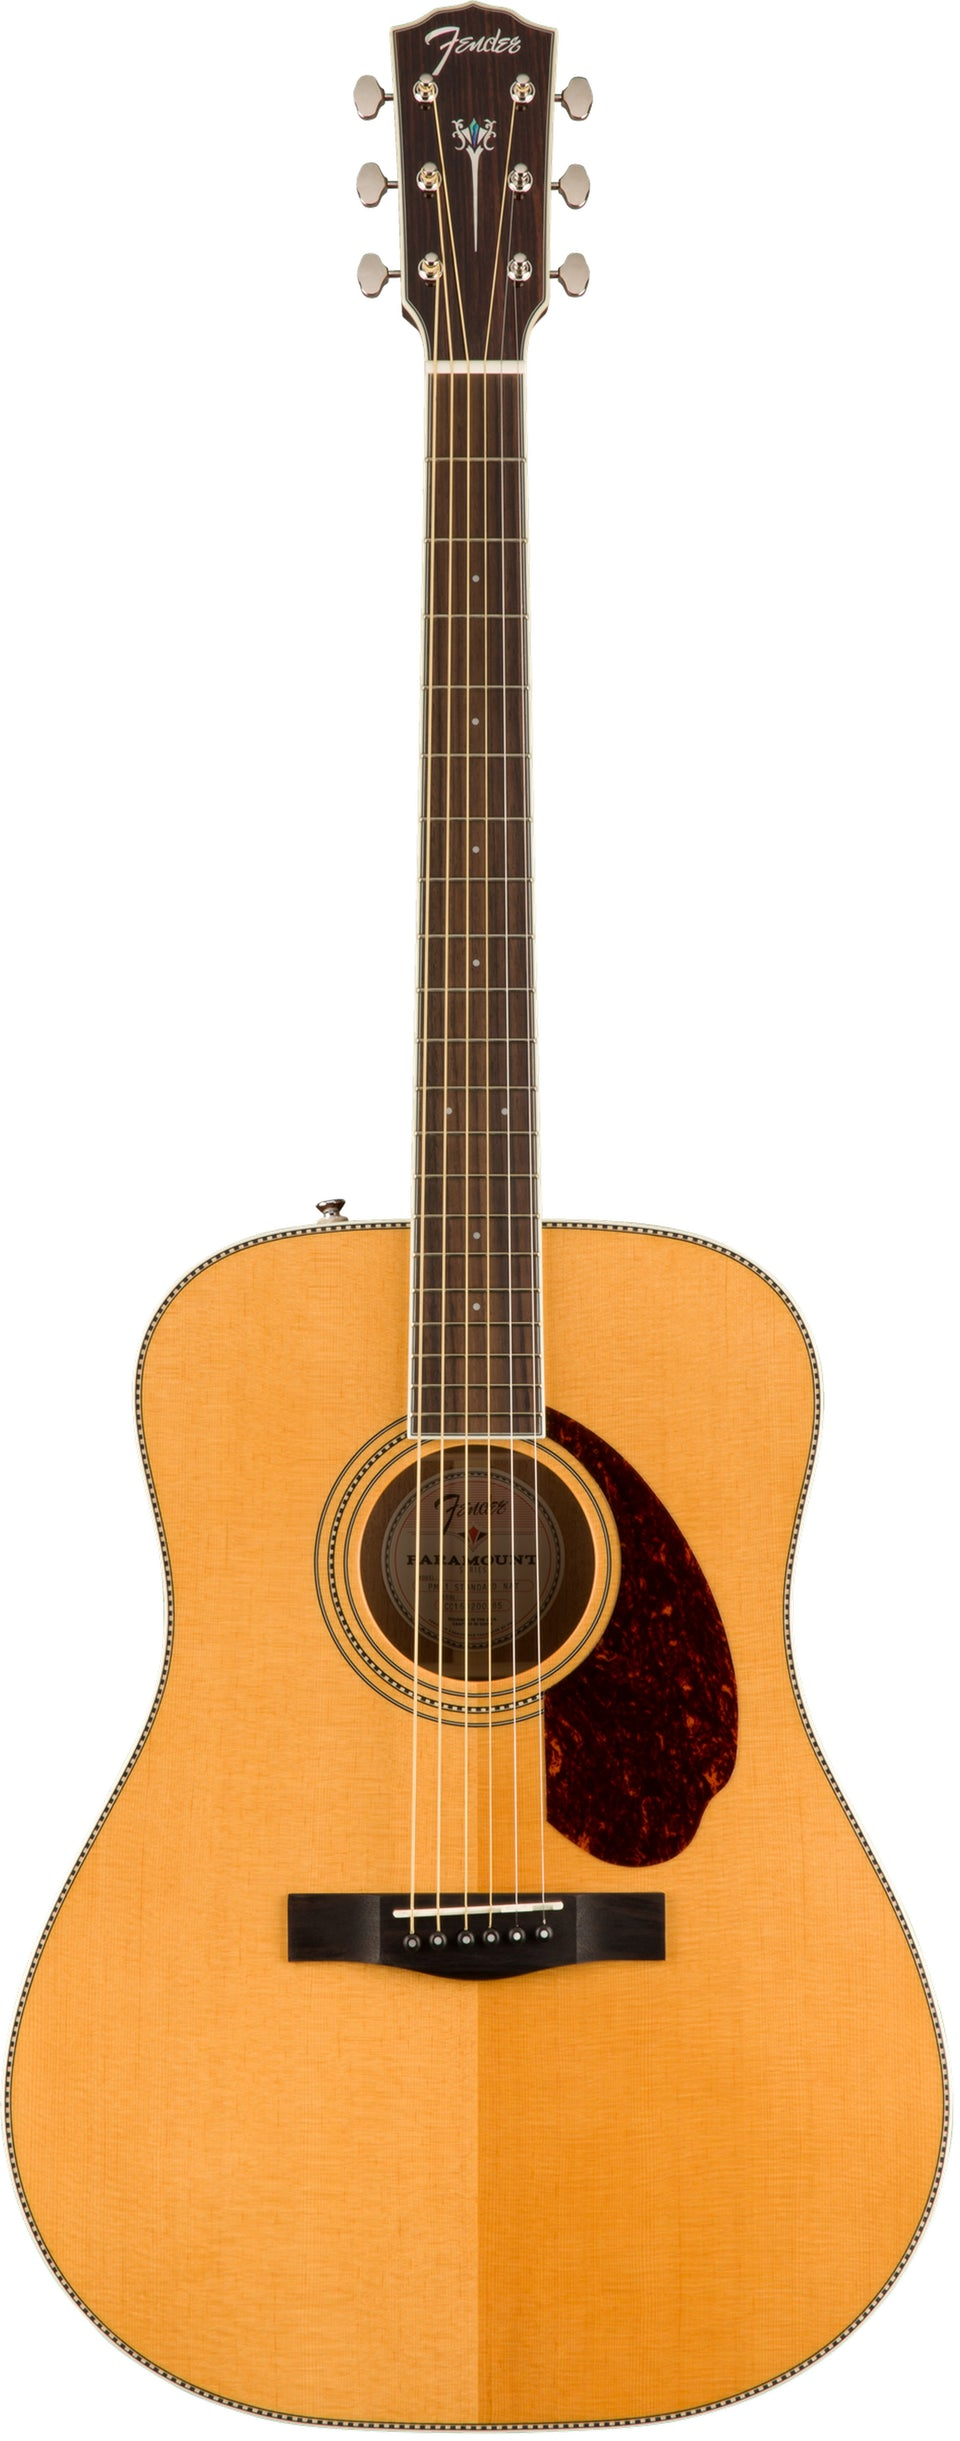 Fender PM-1E Standard Dreadnought Acoustic Electric Guitar - Natural